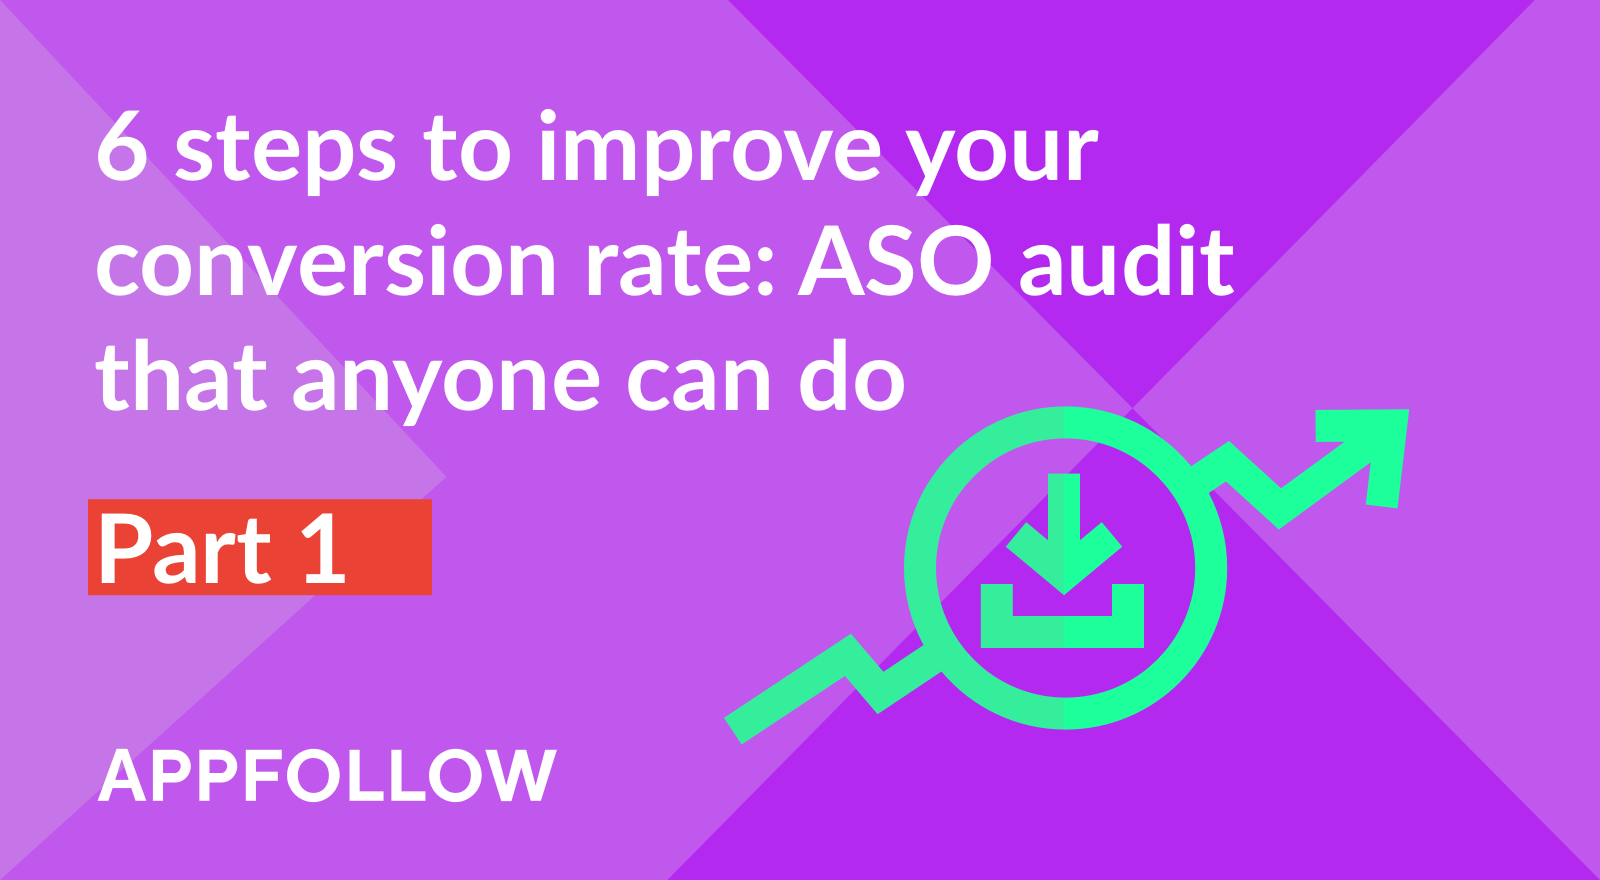 ASO audit that anyone can do. Six steps to improve your conversion rate.  Part 1